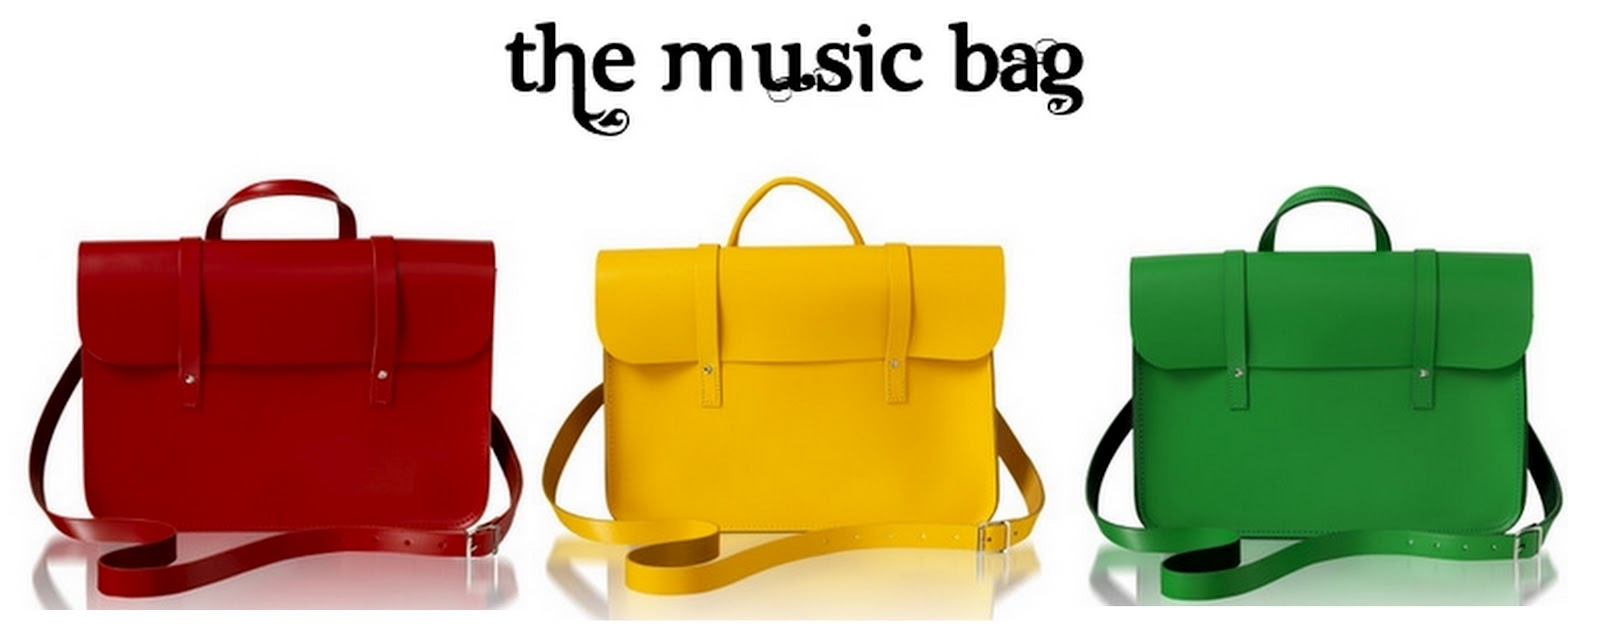 cambridge satchel company music bag